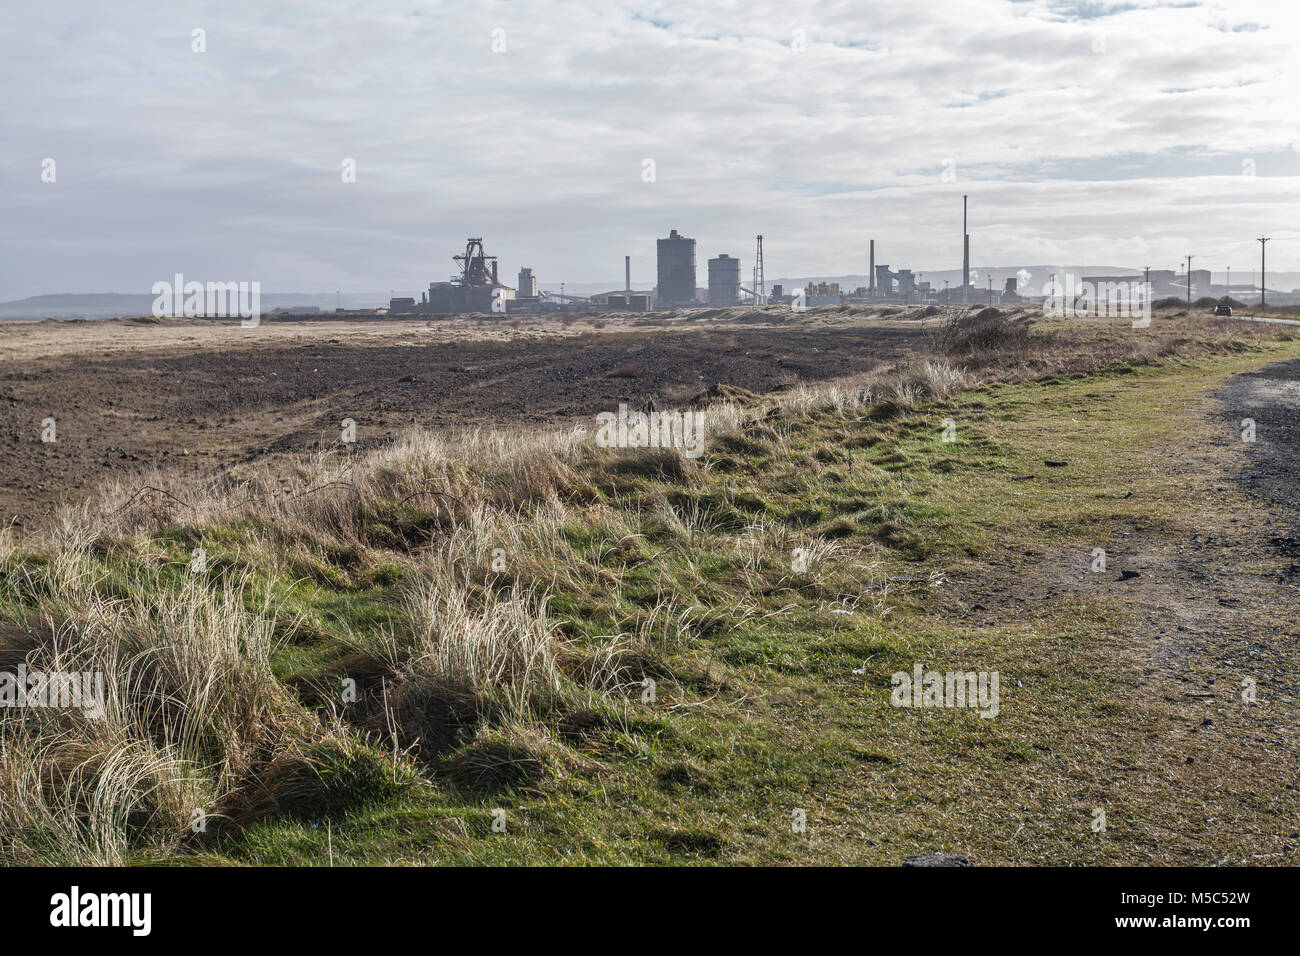 South Gare,Redcar with the former SSI steelworks in the background - Stock Image